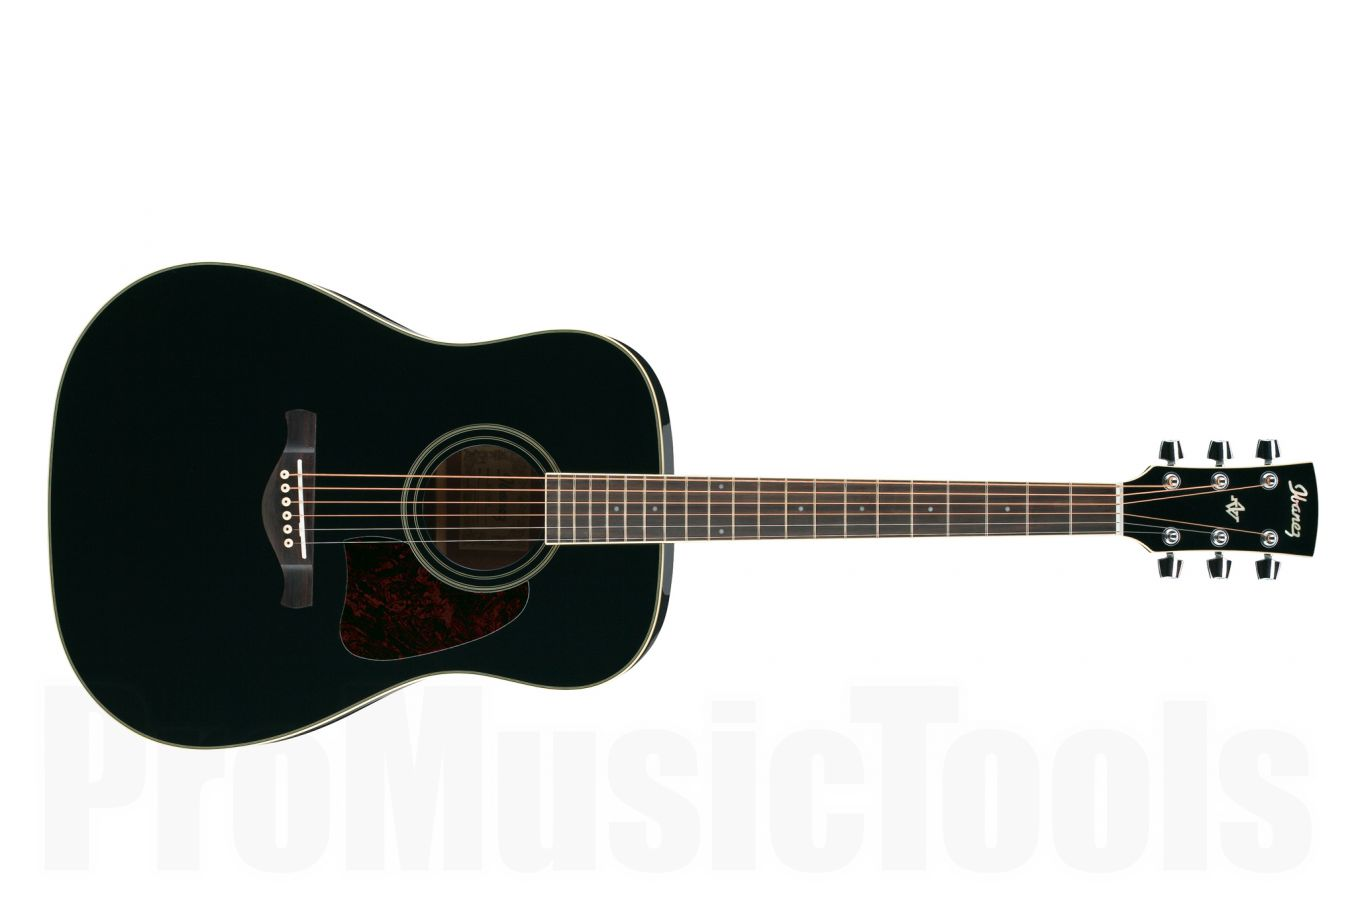 Ibanez AW70 BK - Black - demo